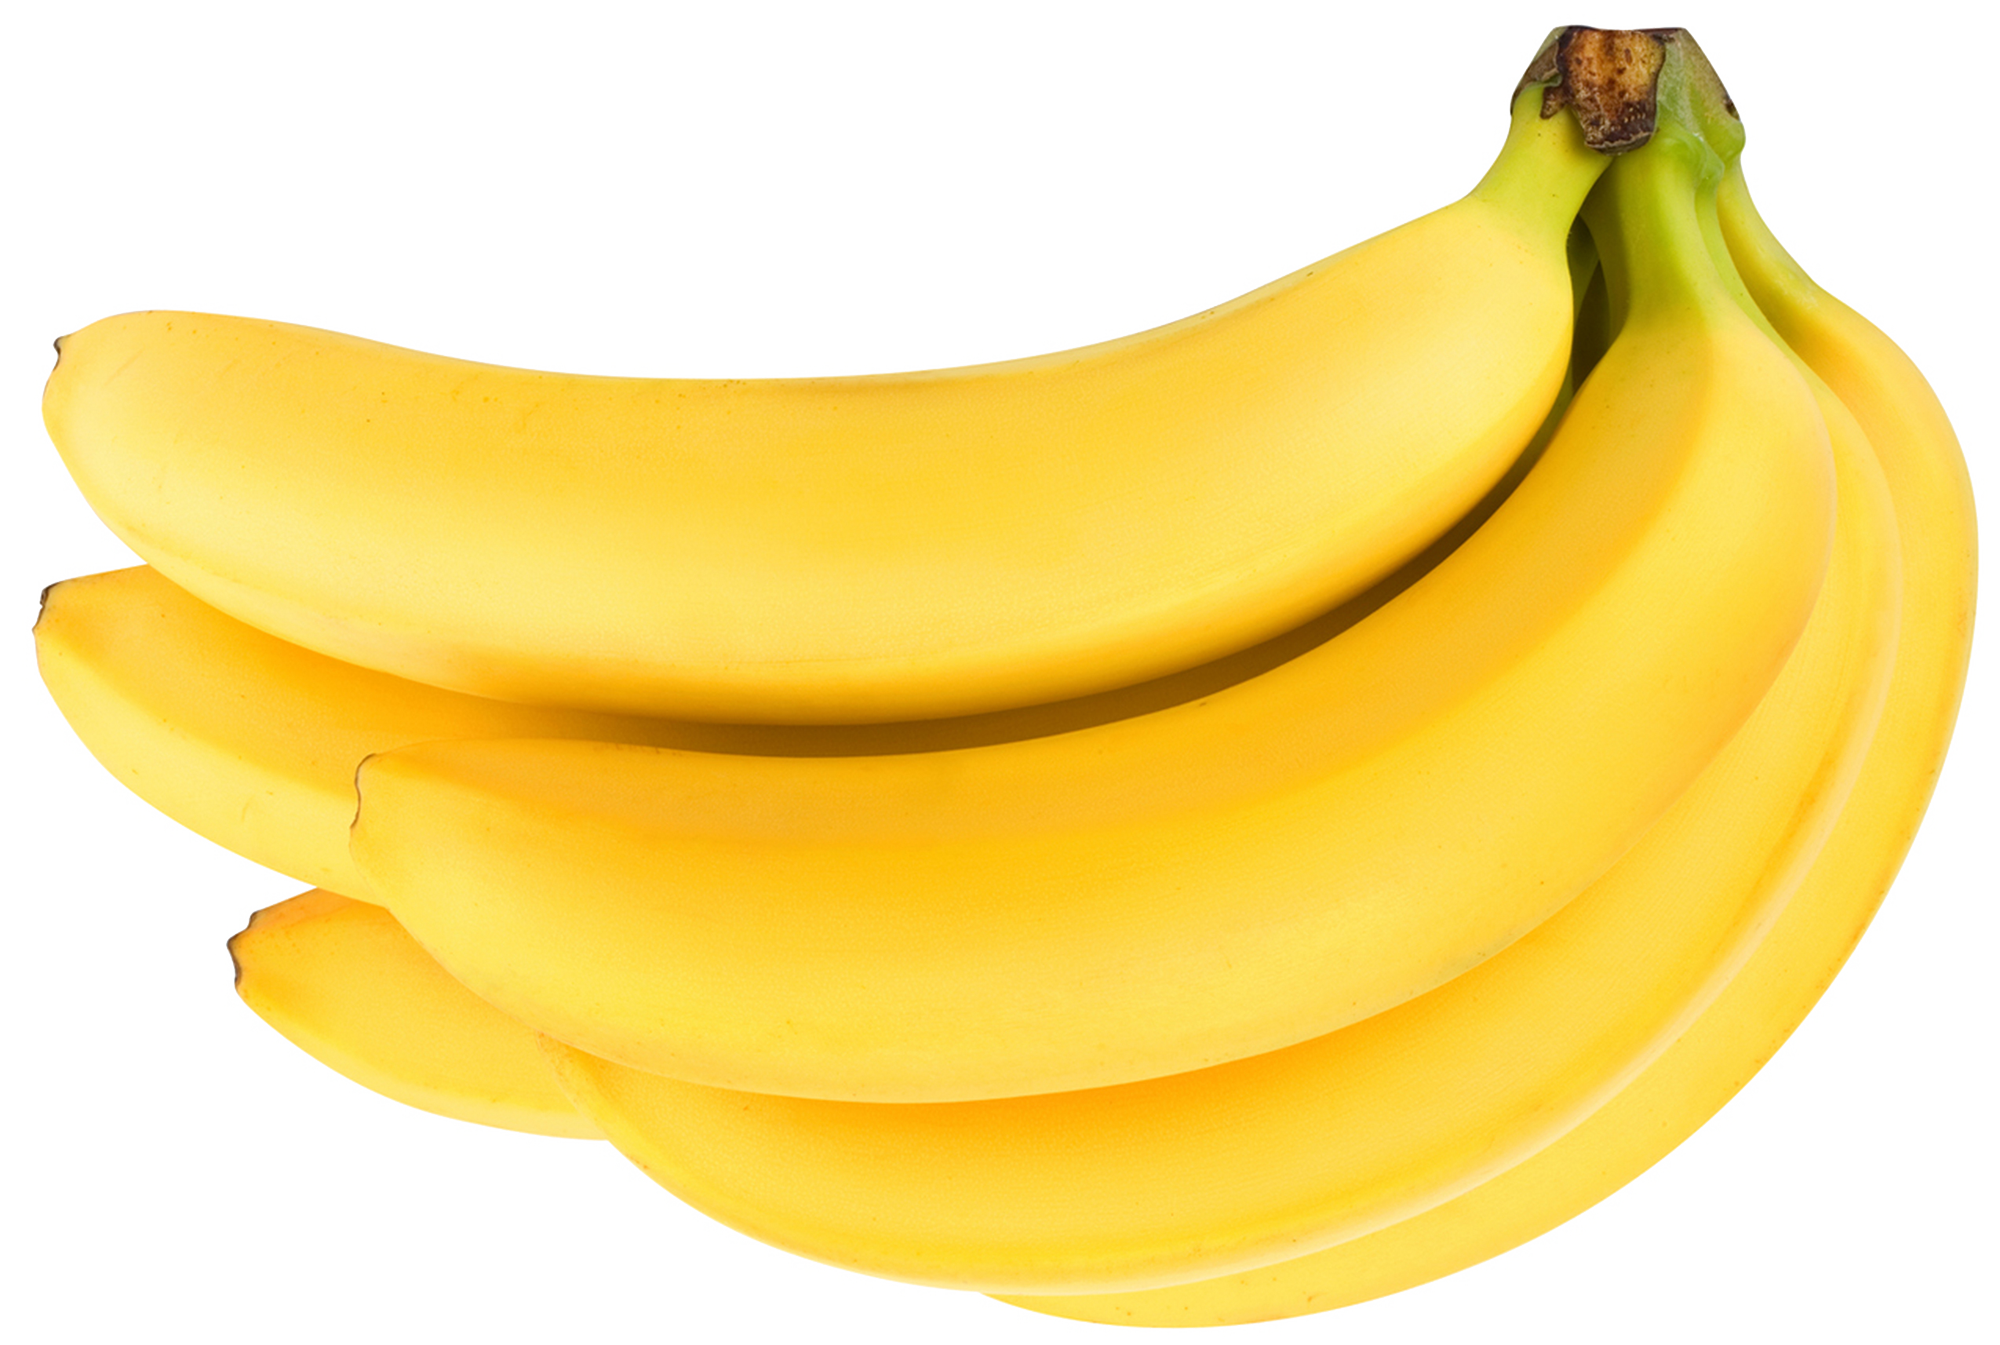 Foods clipart banana. Large bananas png over